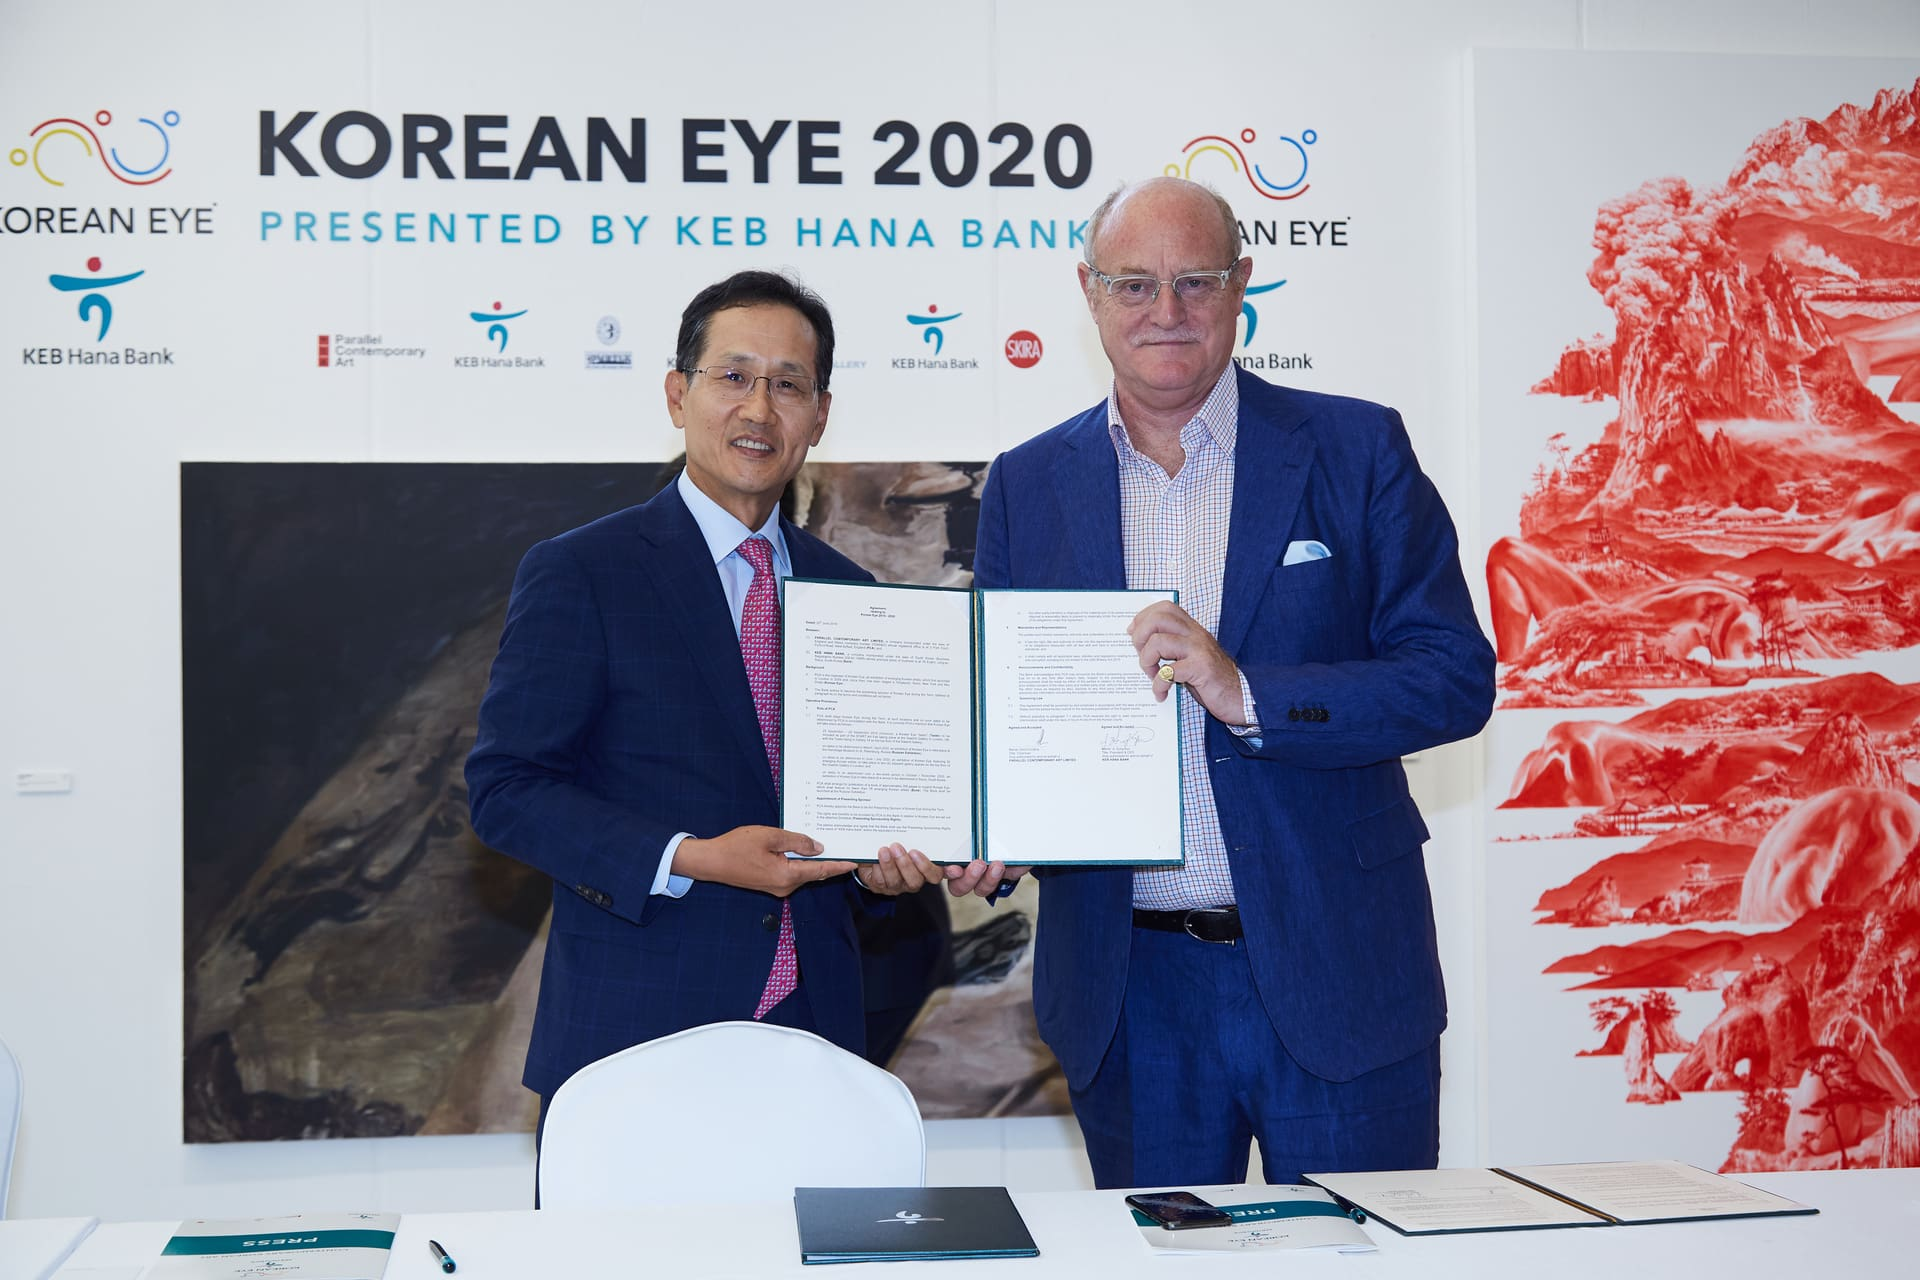 Press launch for Korean Eye 2020